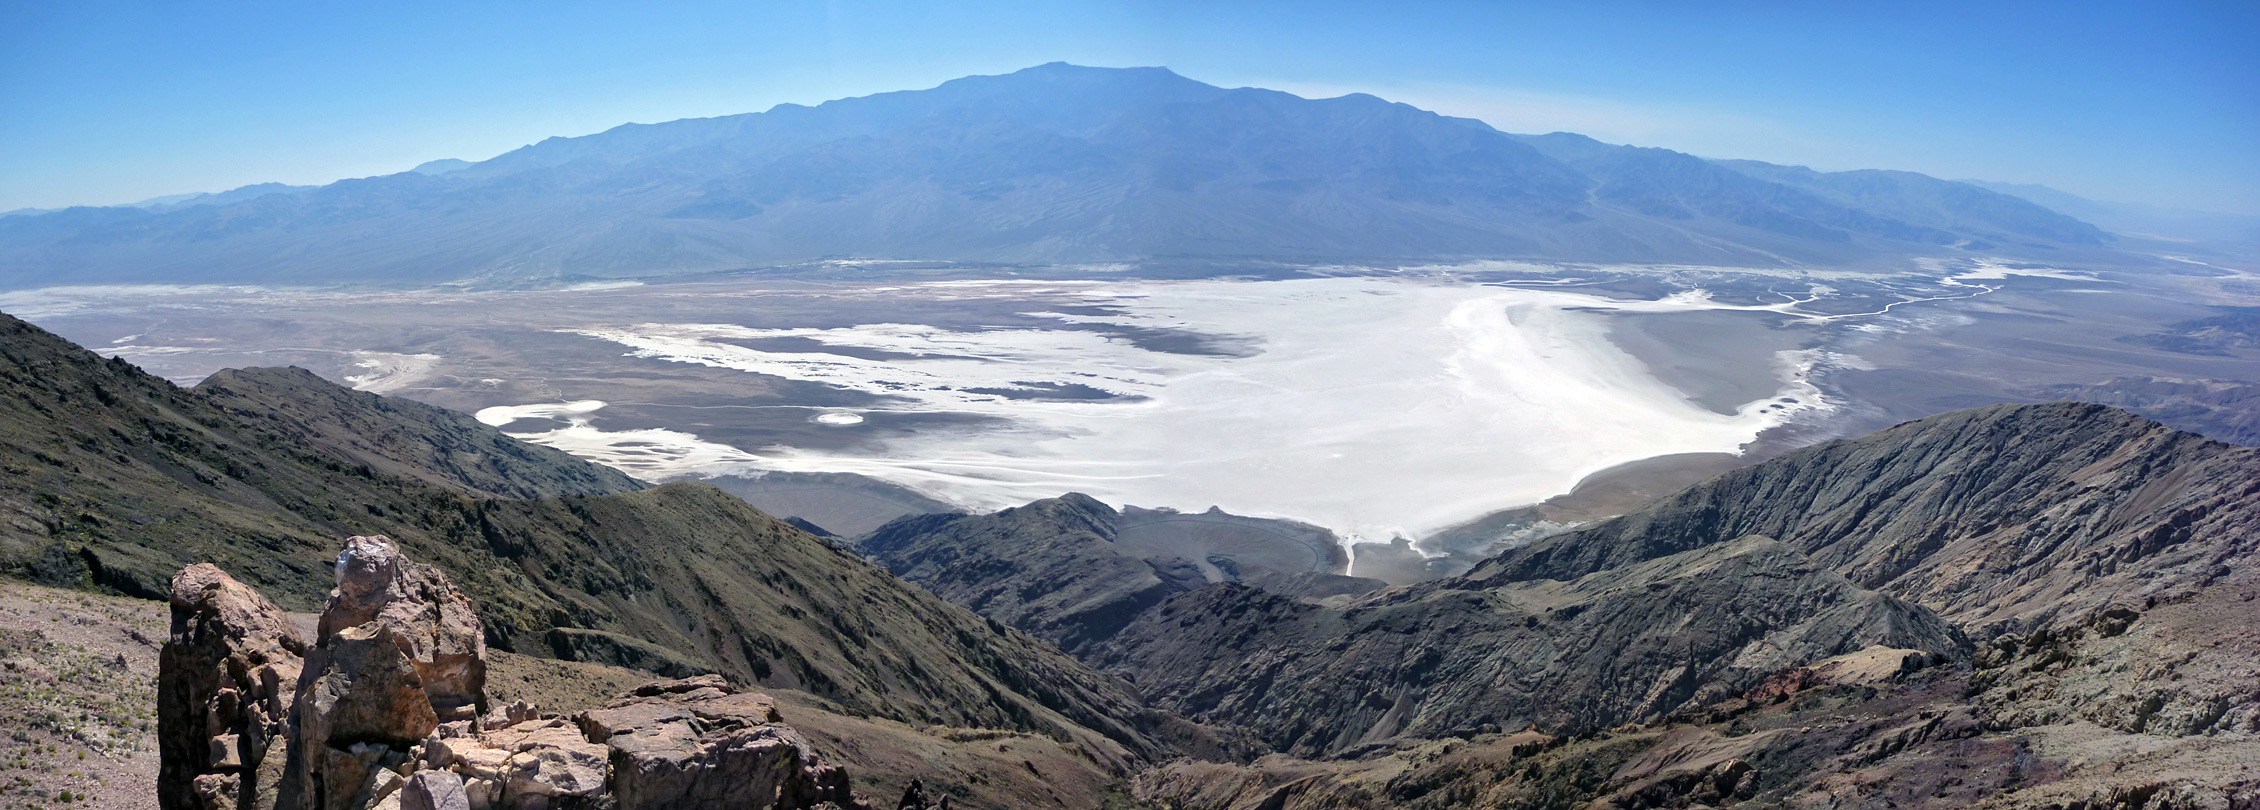 Badwater salt flats and the Panamint Mountains